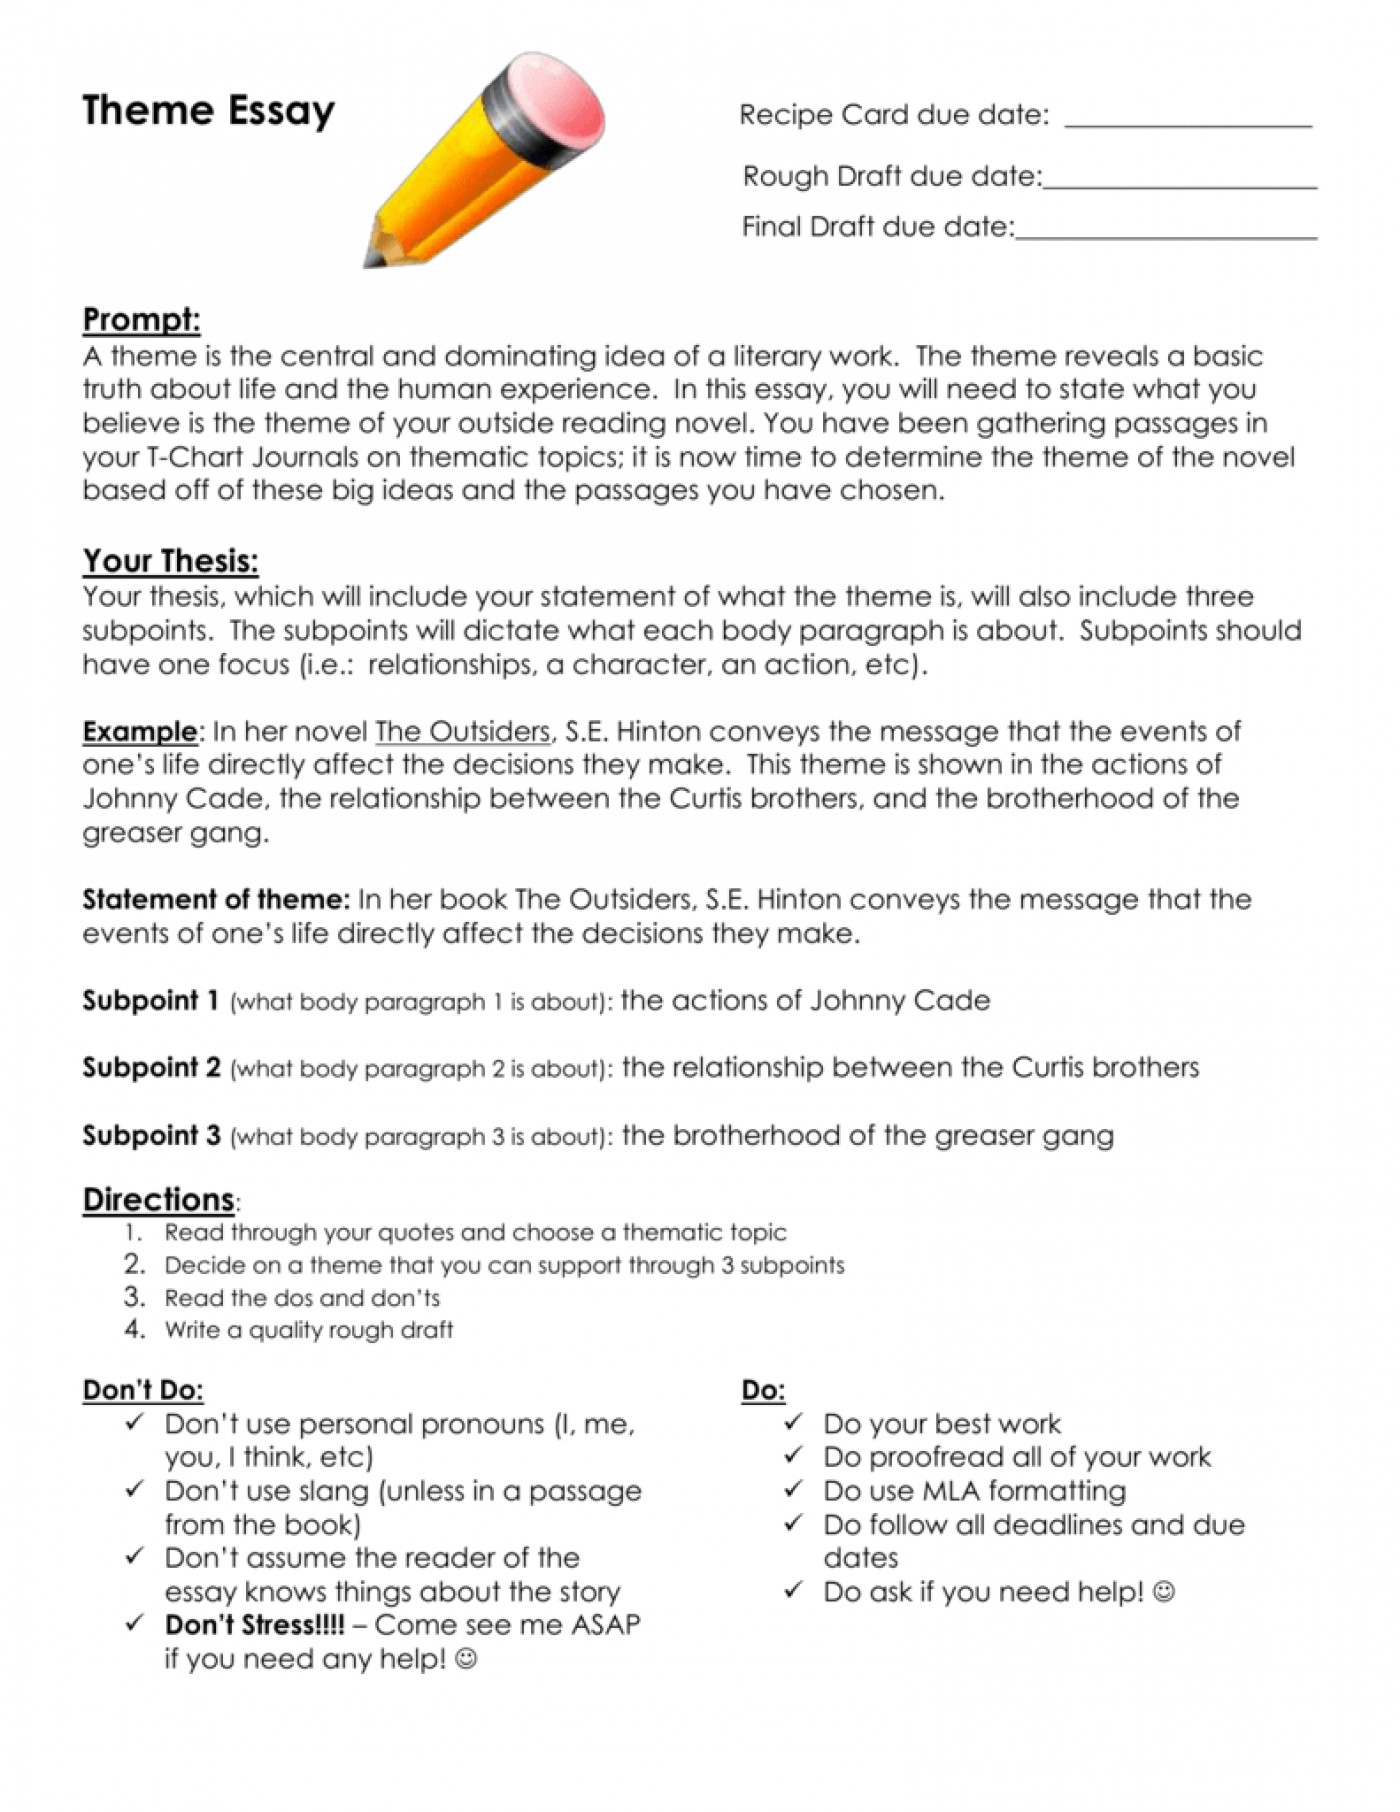 017 Research Paper Conclusion For Pdf The Outsiders Theme Essay Assignment Outline Questions Imposing A And Recommendation Paragraph Example Summary Of 1400